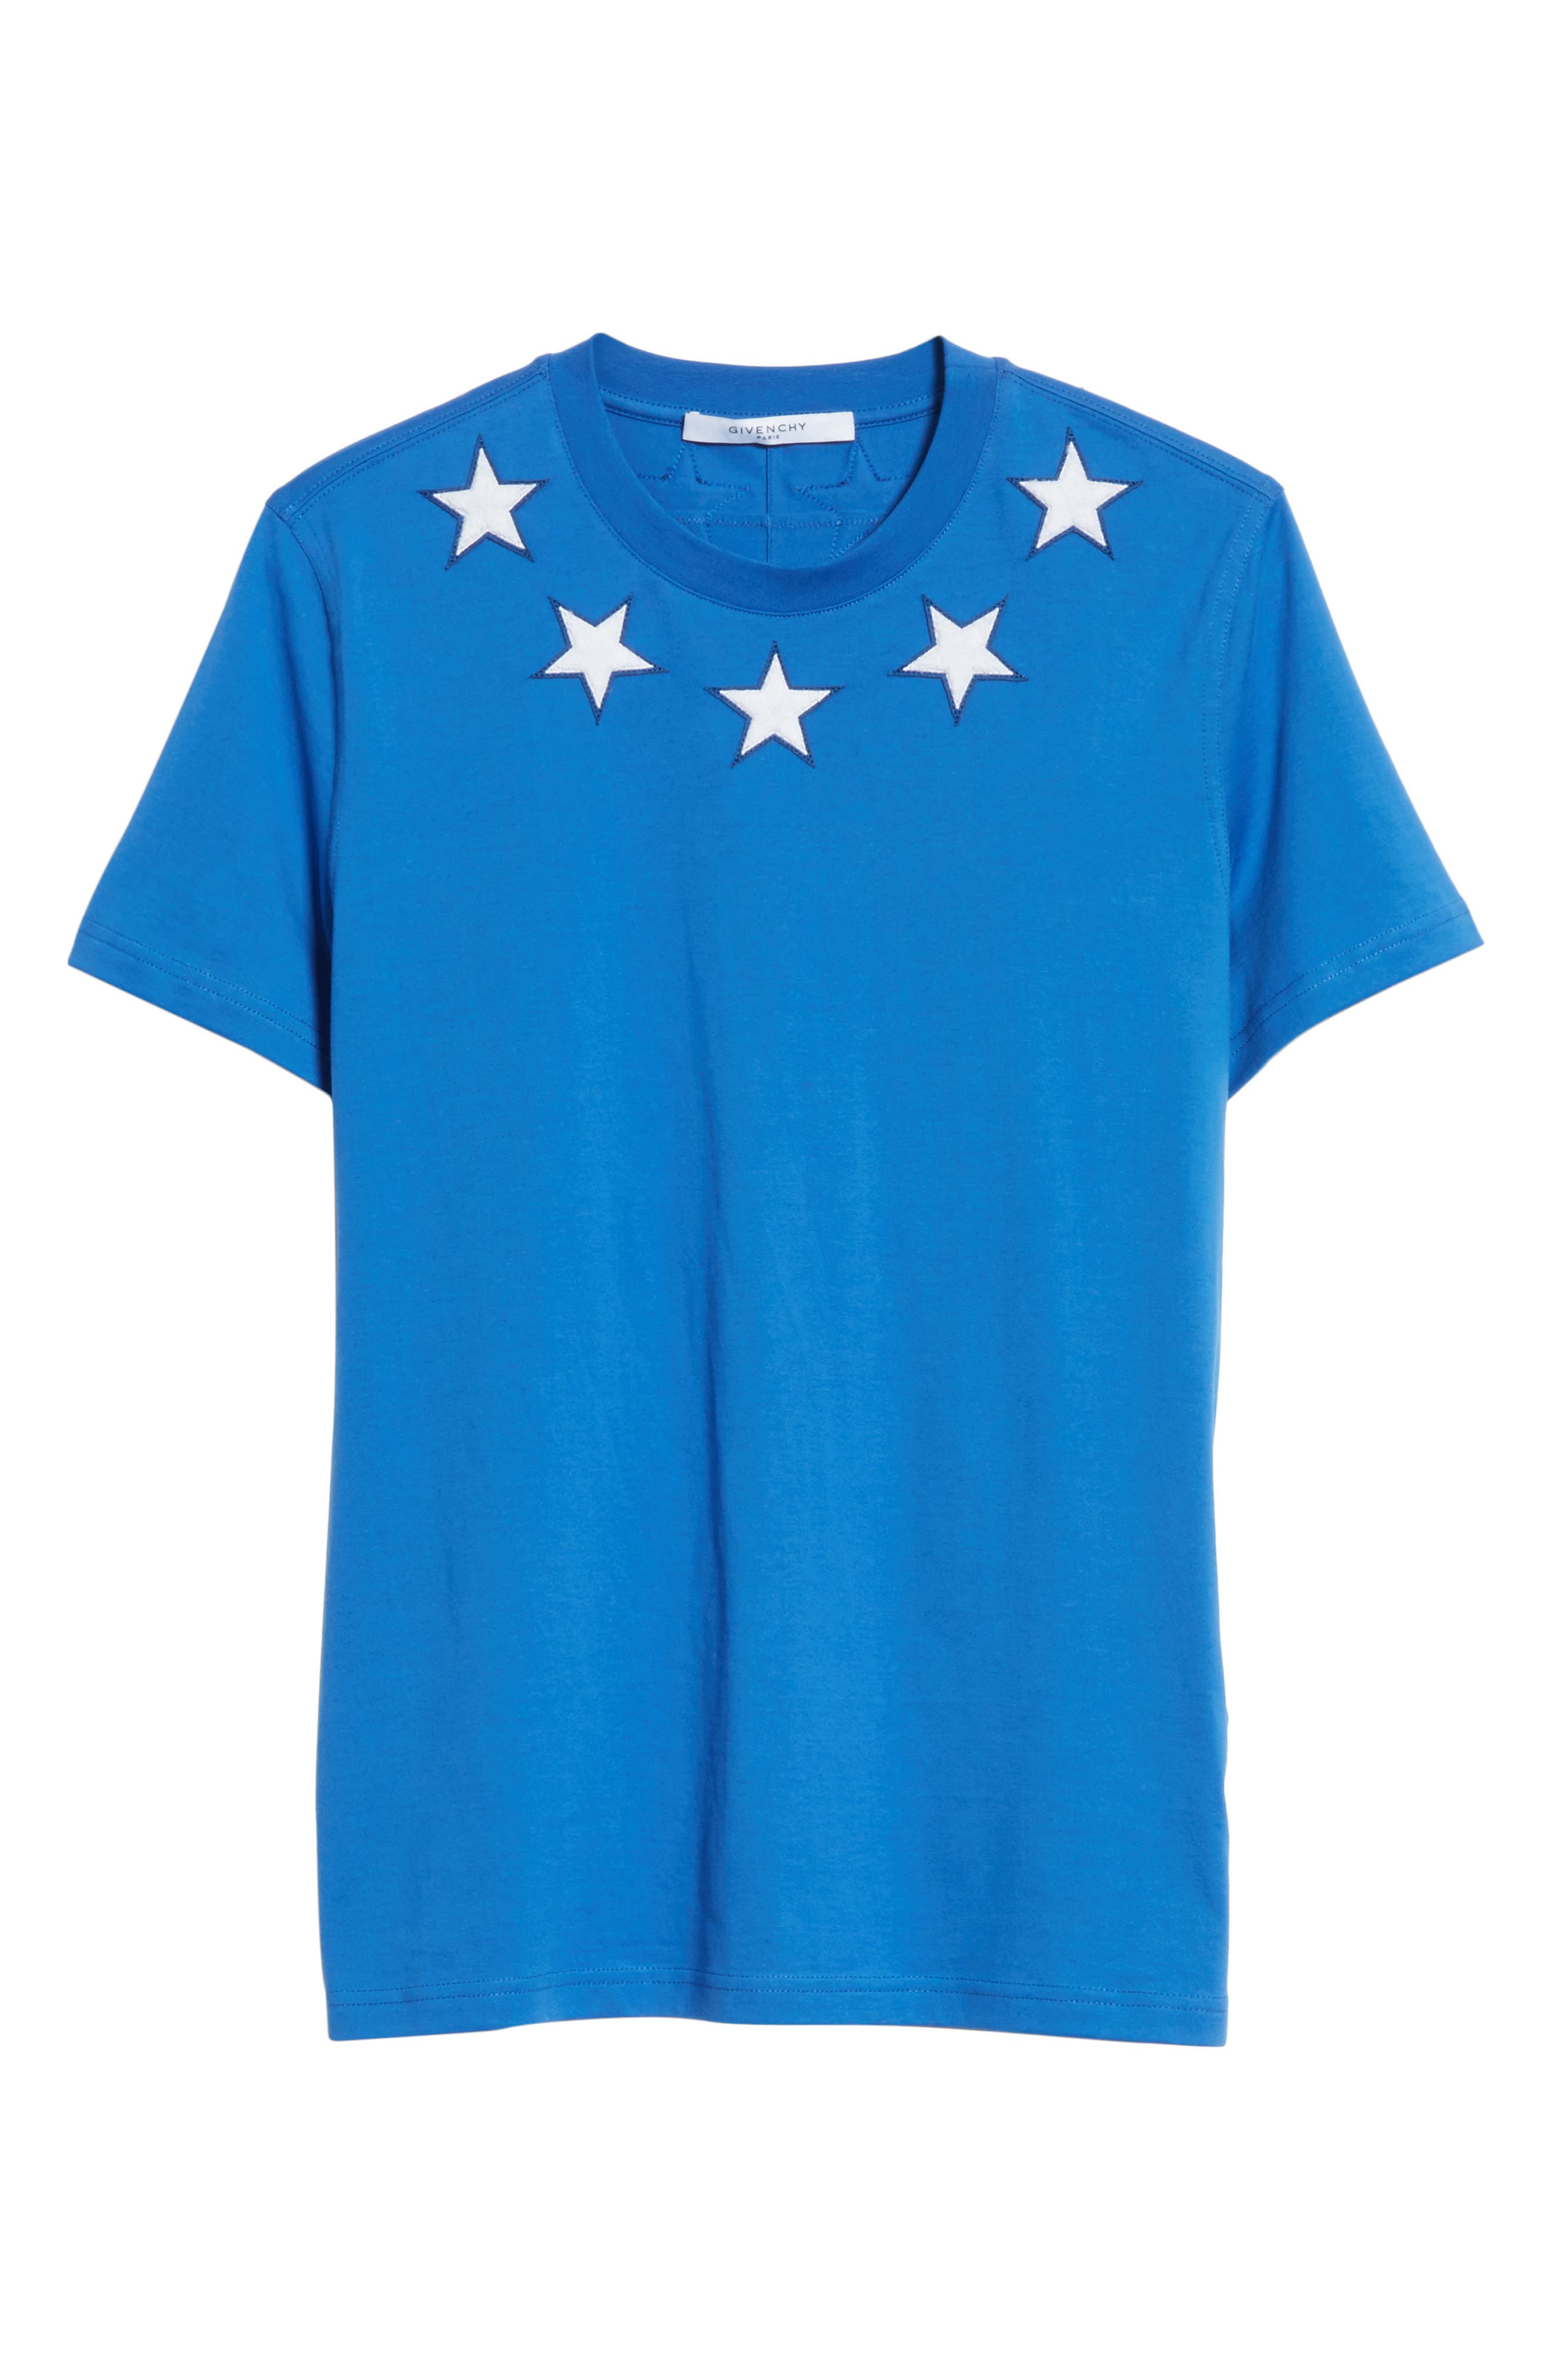 Star Appliqué T-Shirt,                         Main,                         color, Blue